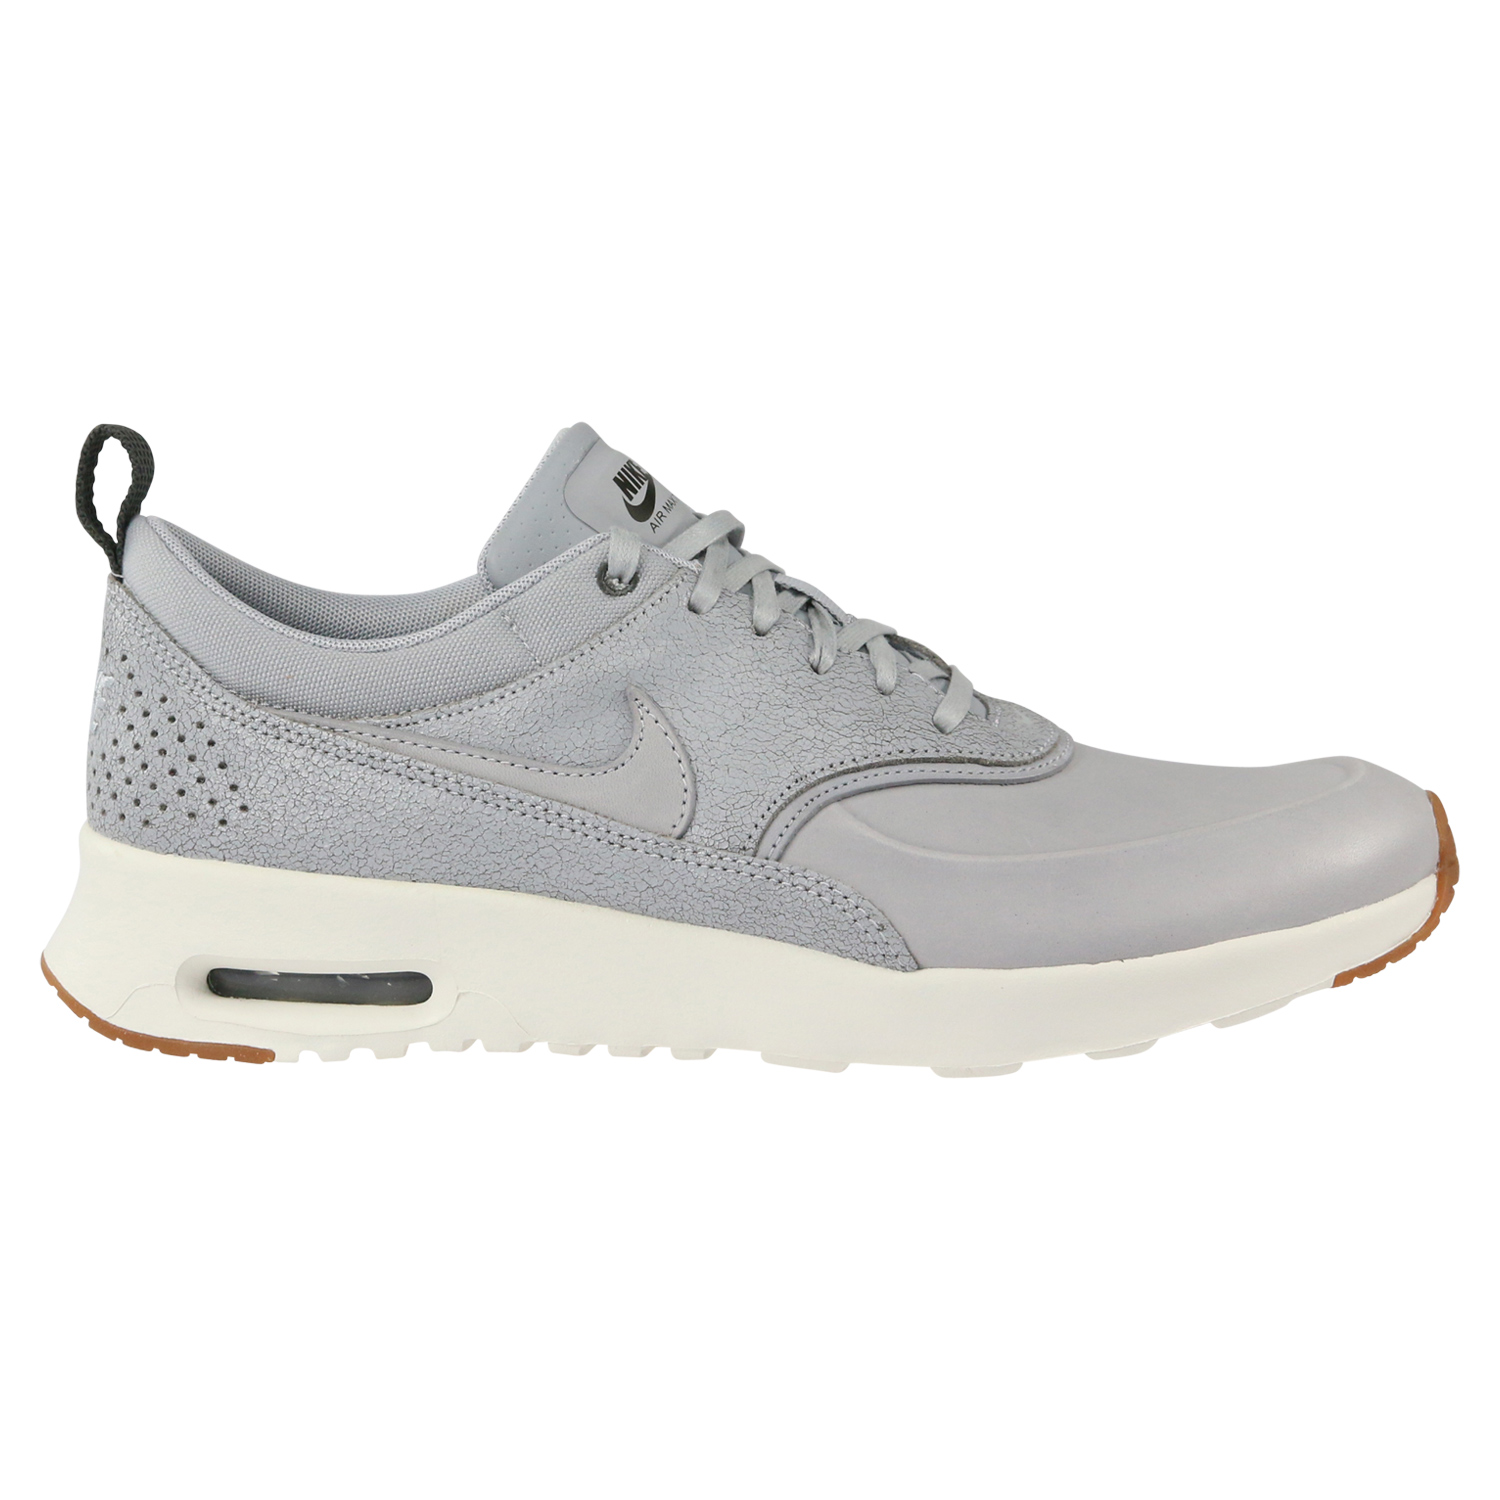 nike air max thea ultra premium textile schuhe turnschuhe. Black Bedroom Furniture Sets. Home Design Ideas